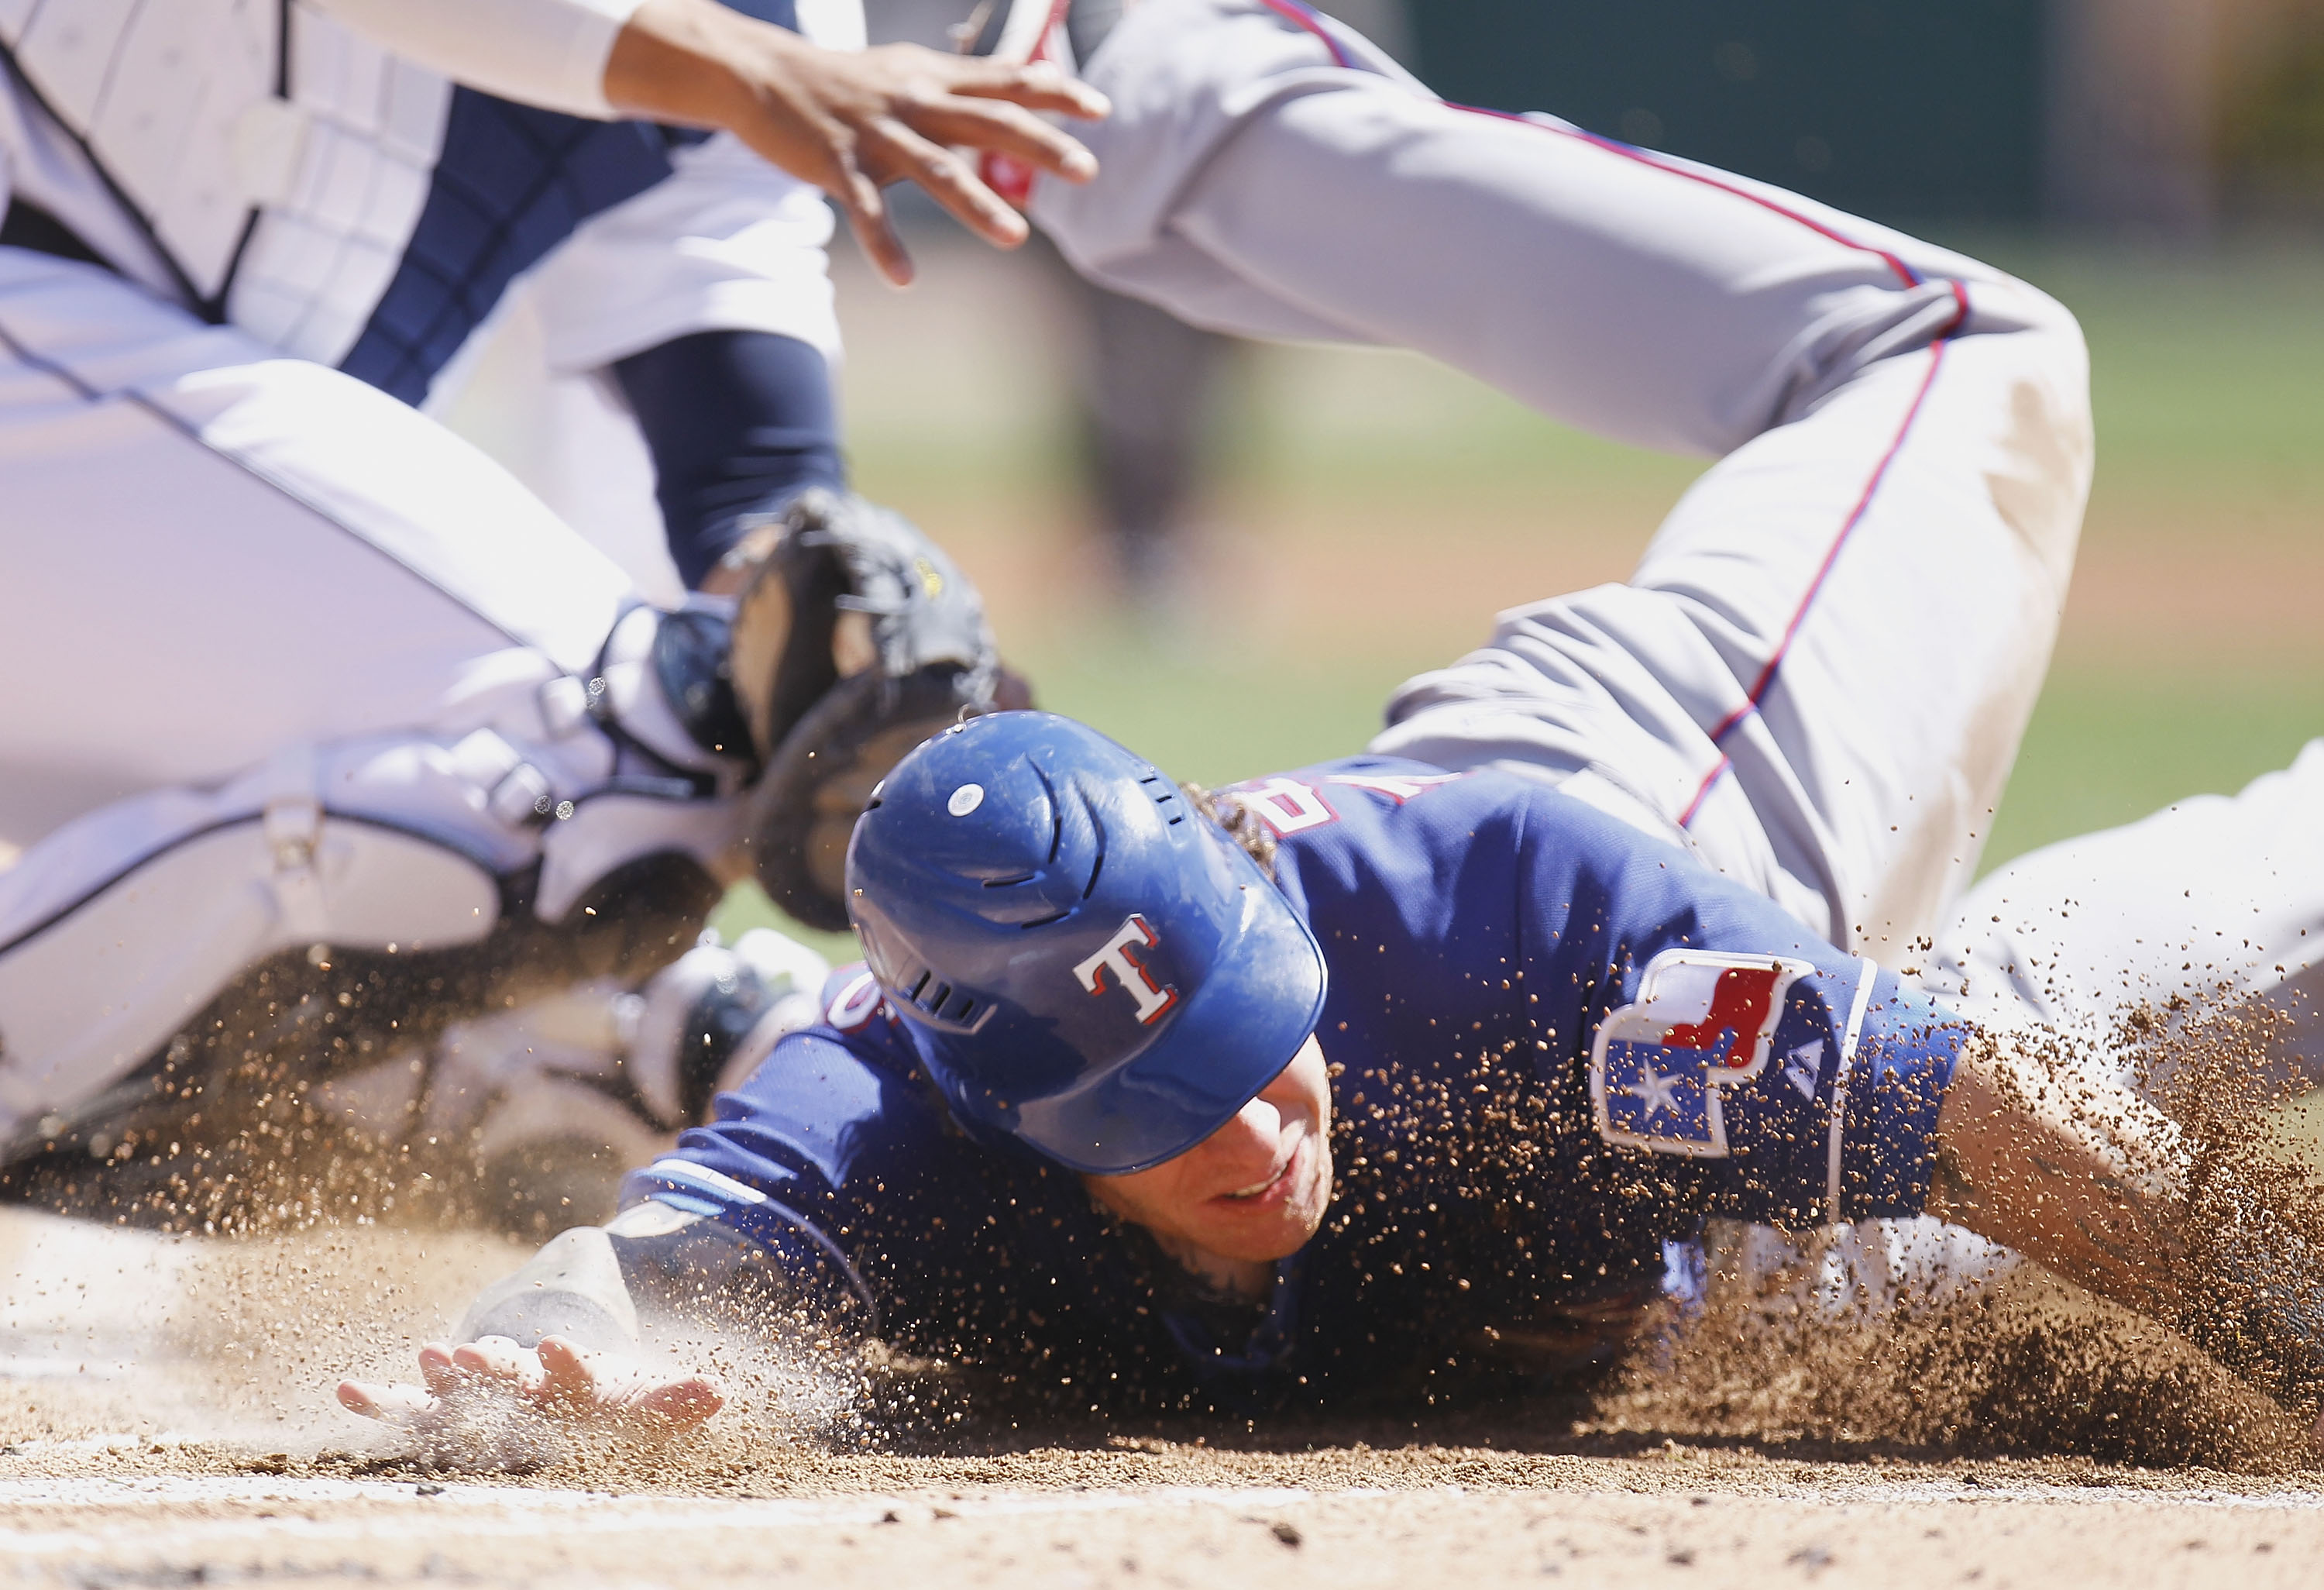 DETROIT, MI - APRIL 12:  Josh Hamilton #32 of the Texas Rangers slides into home plate during the third inning while playing the Detroit Tigers at Comerica Park on April 12, 2011 in Detroit, Michigan. Hamilton was out from a tag by Victor Martinez  (Photo